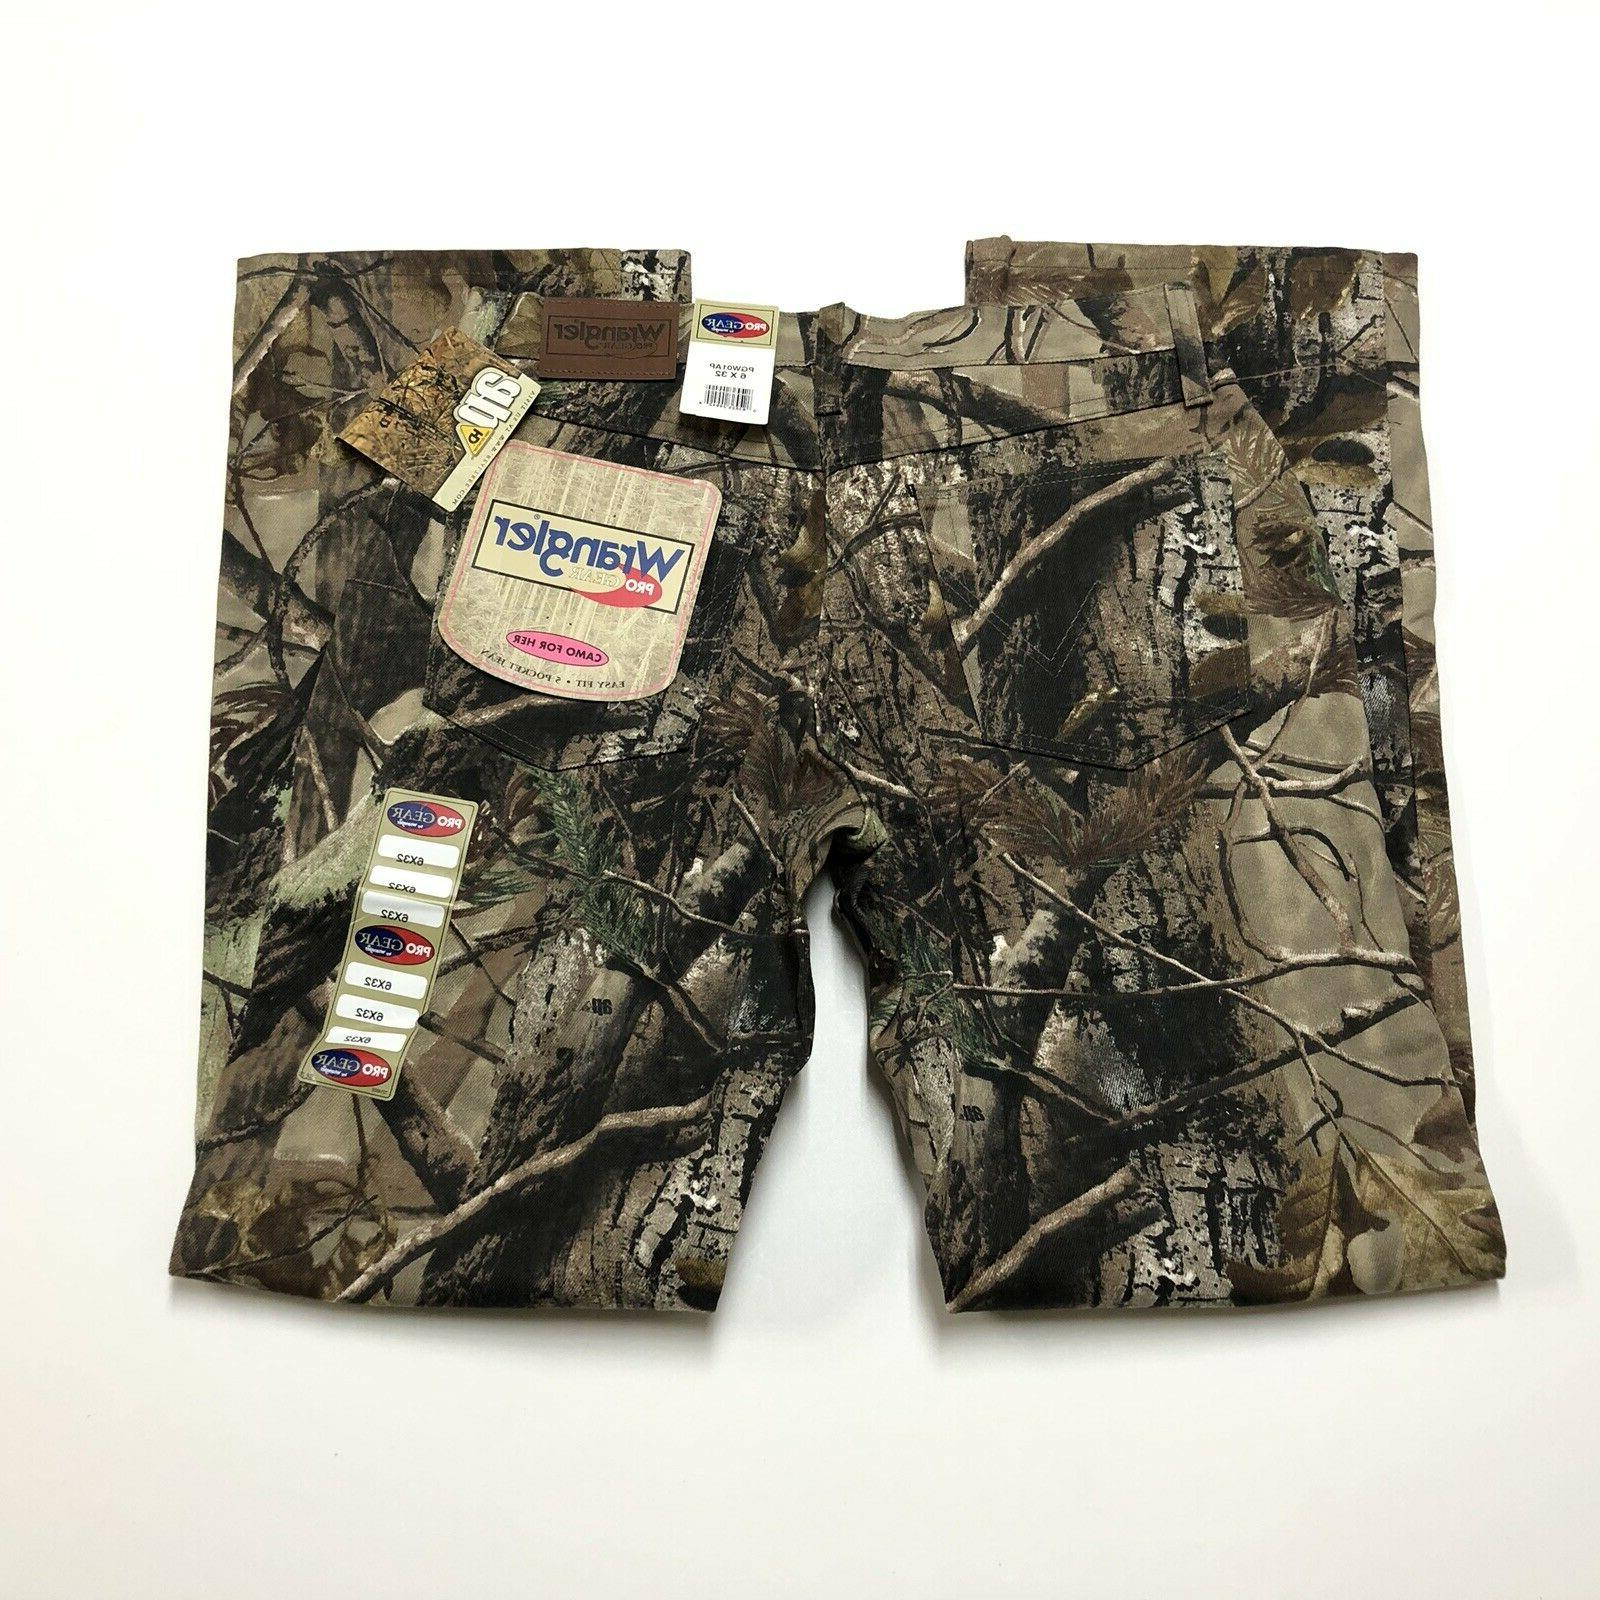 camo hunting pants womens 6 x 32